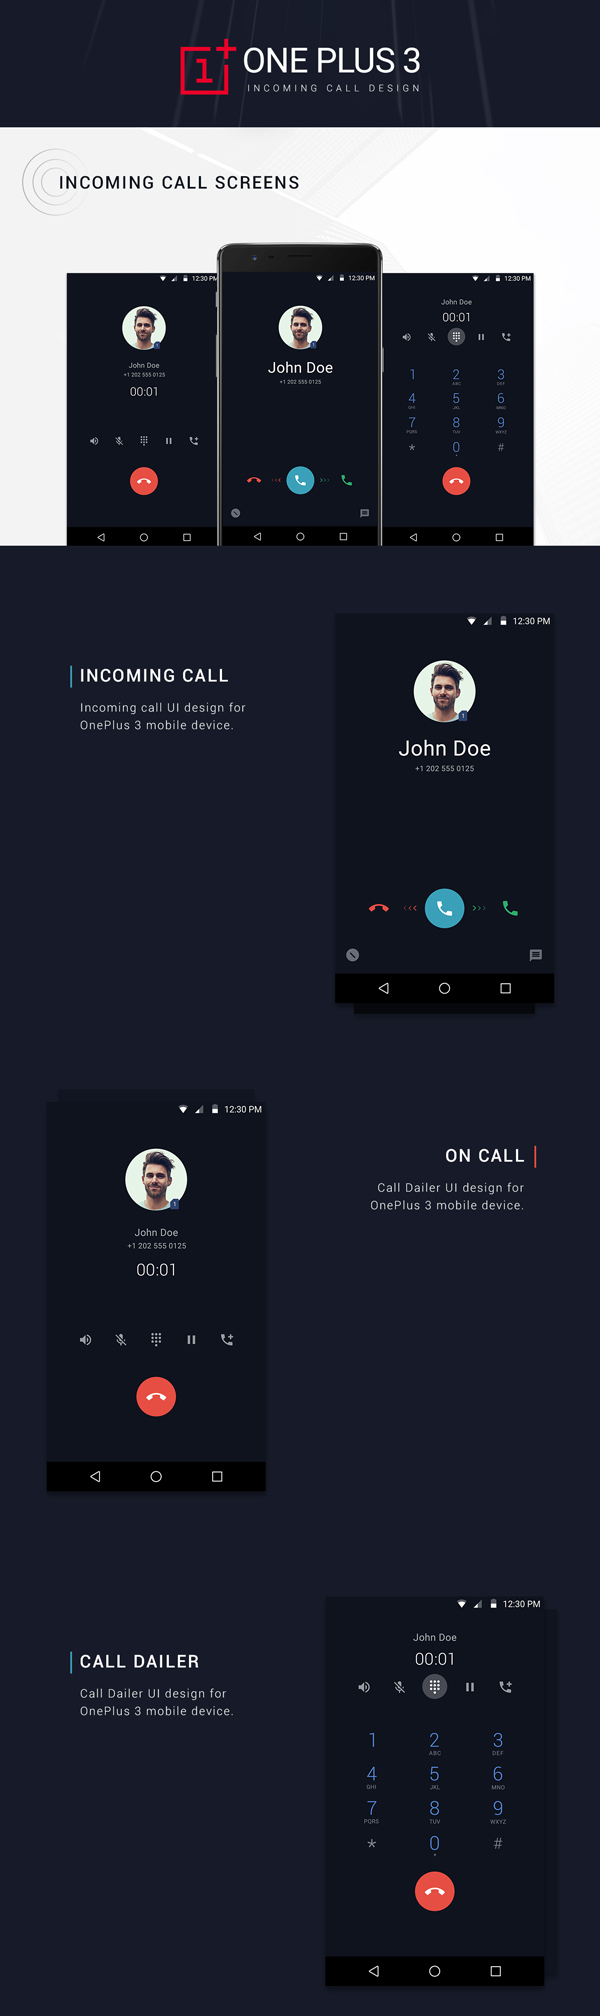 Free ONEPLUS Incoming Call UI Design PSD Template